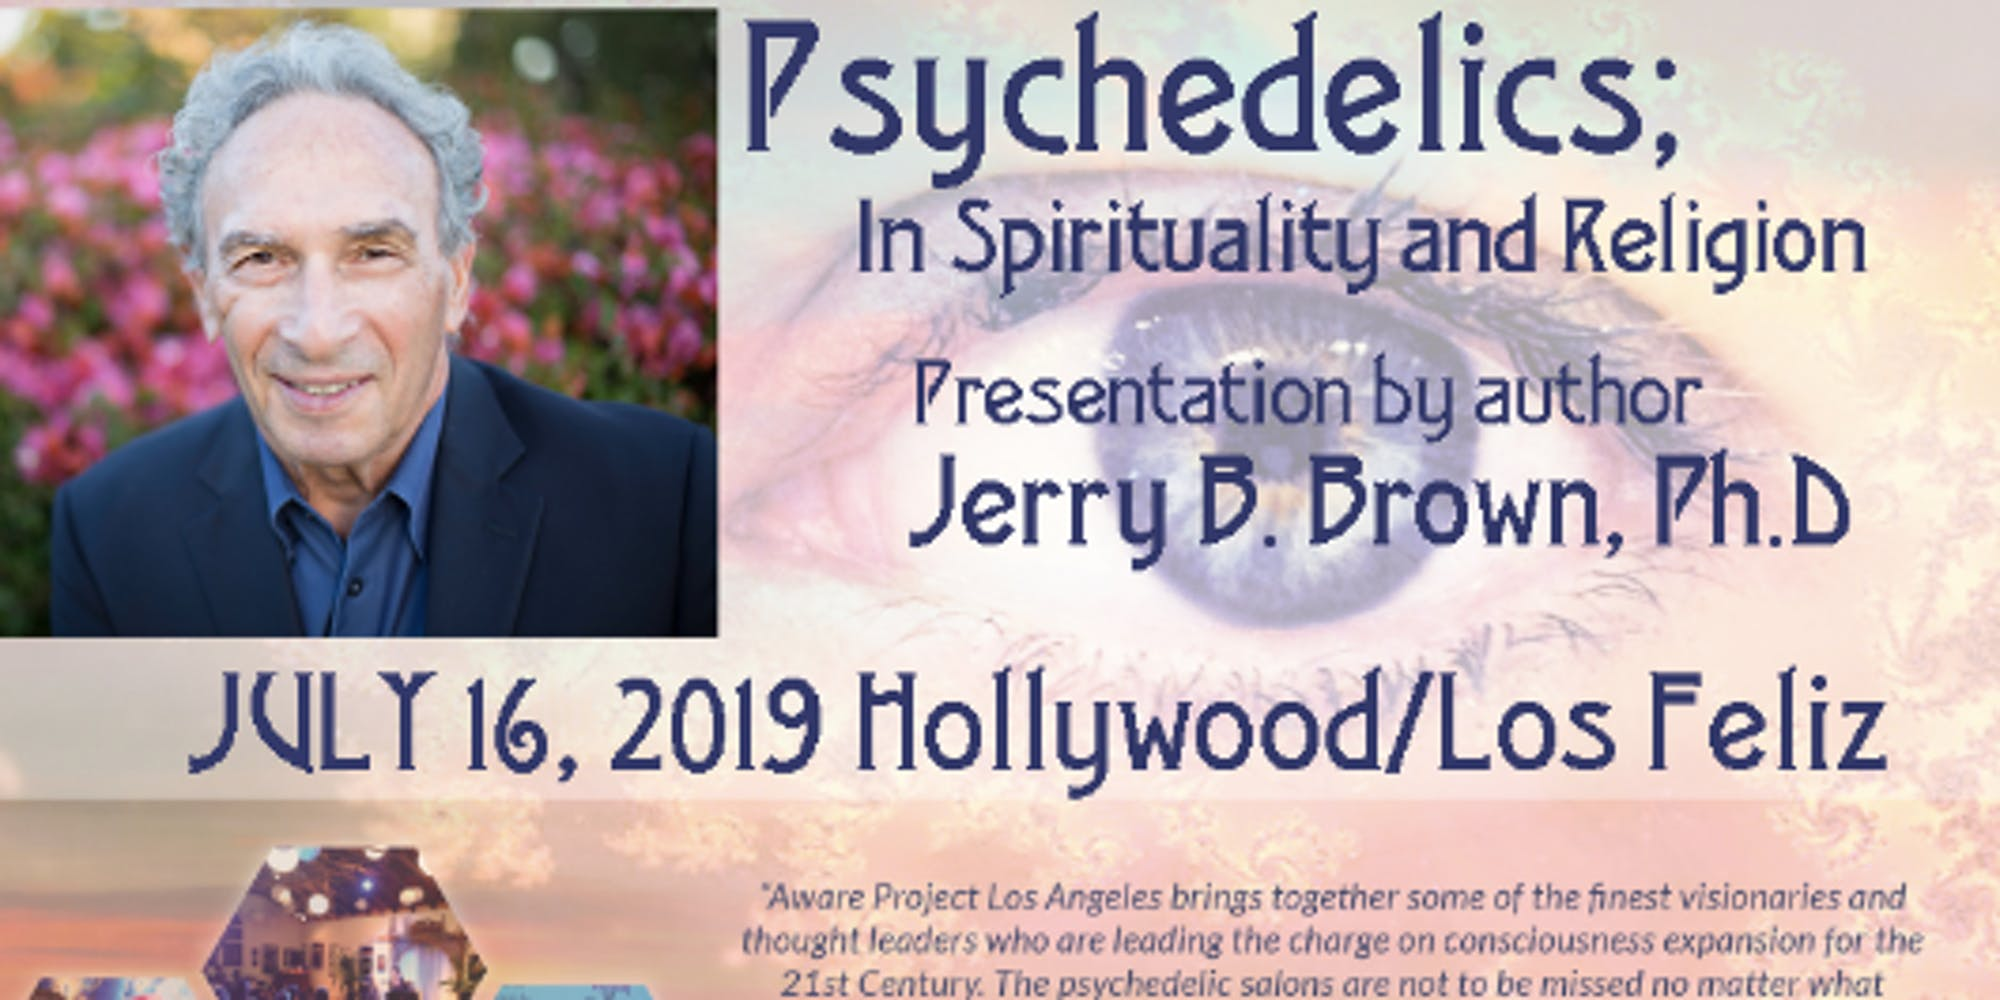 Psychedelics: In Spirituality and Religion